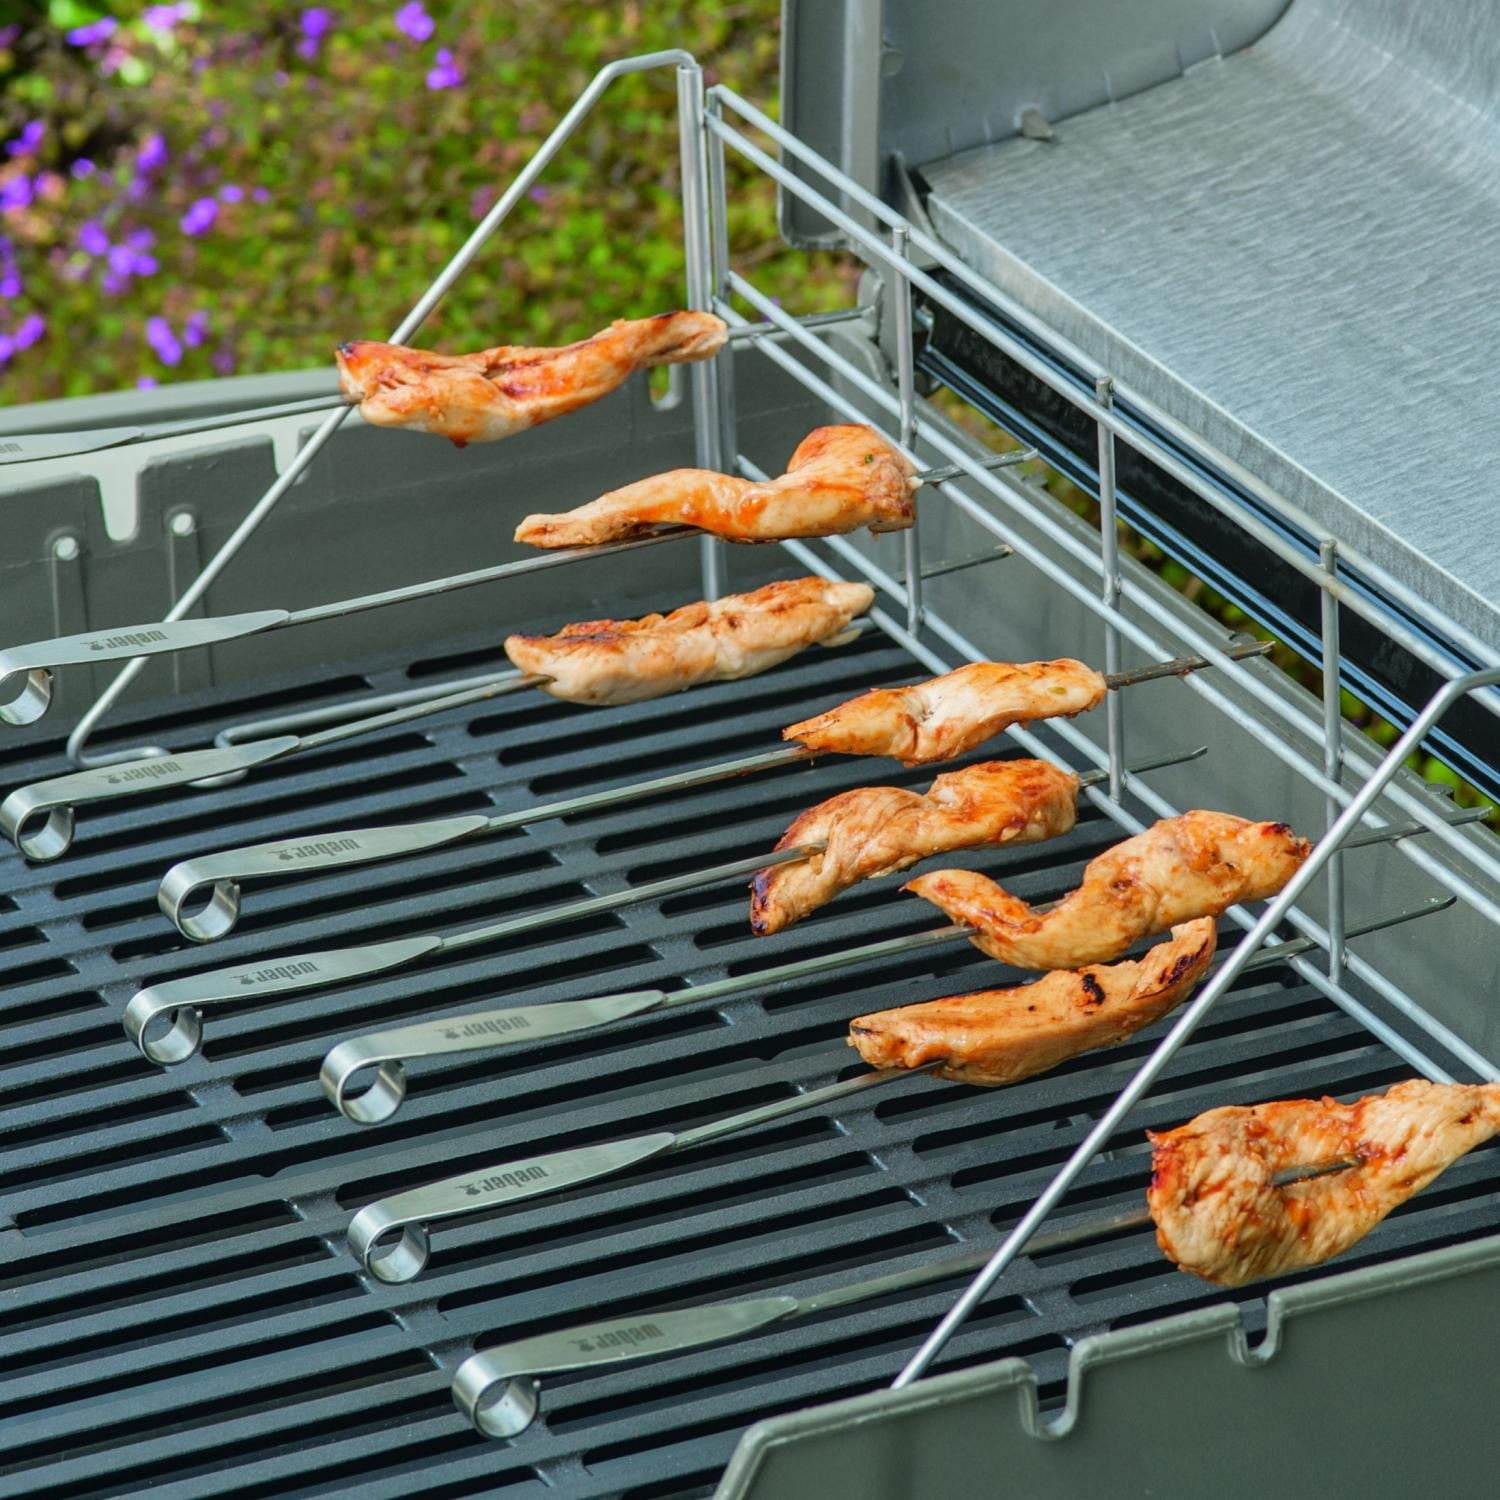 Weber 7615 Grill Rack And Skewer Set - 11-Pieces